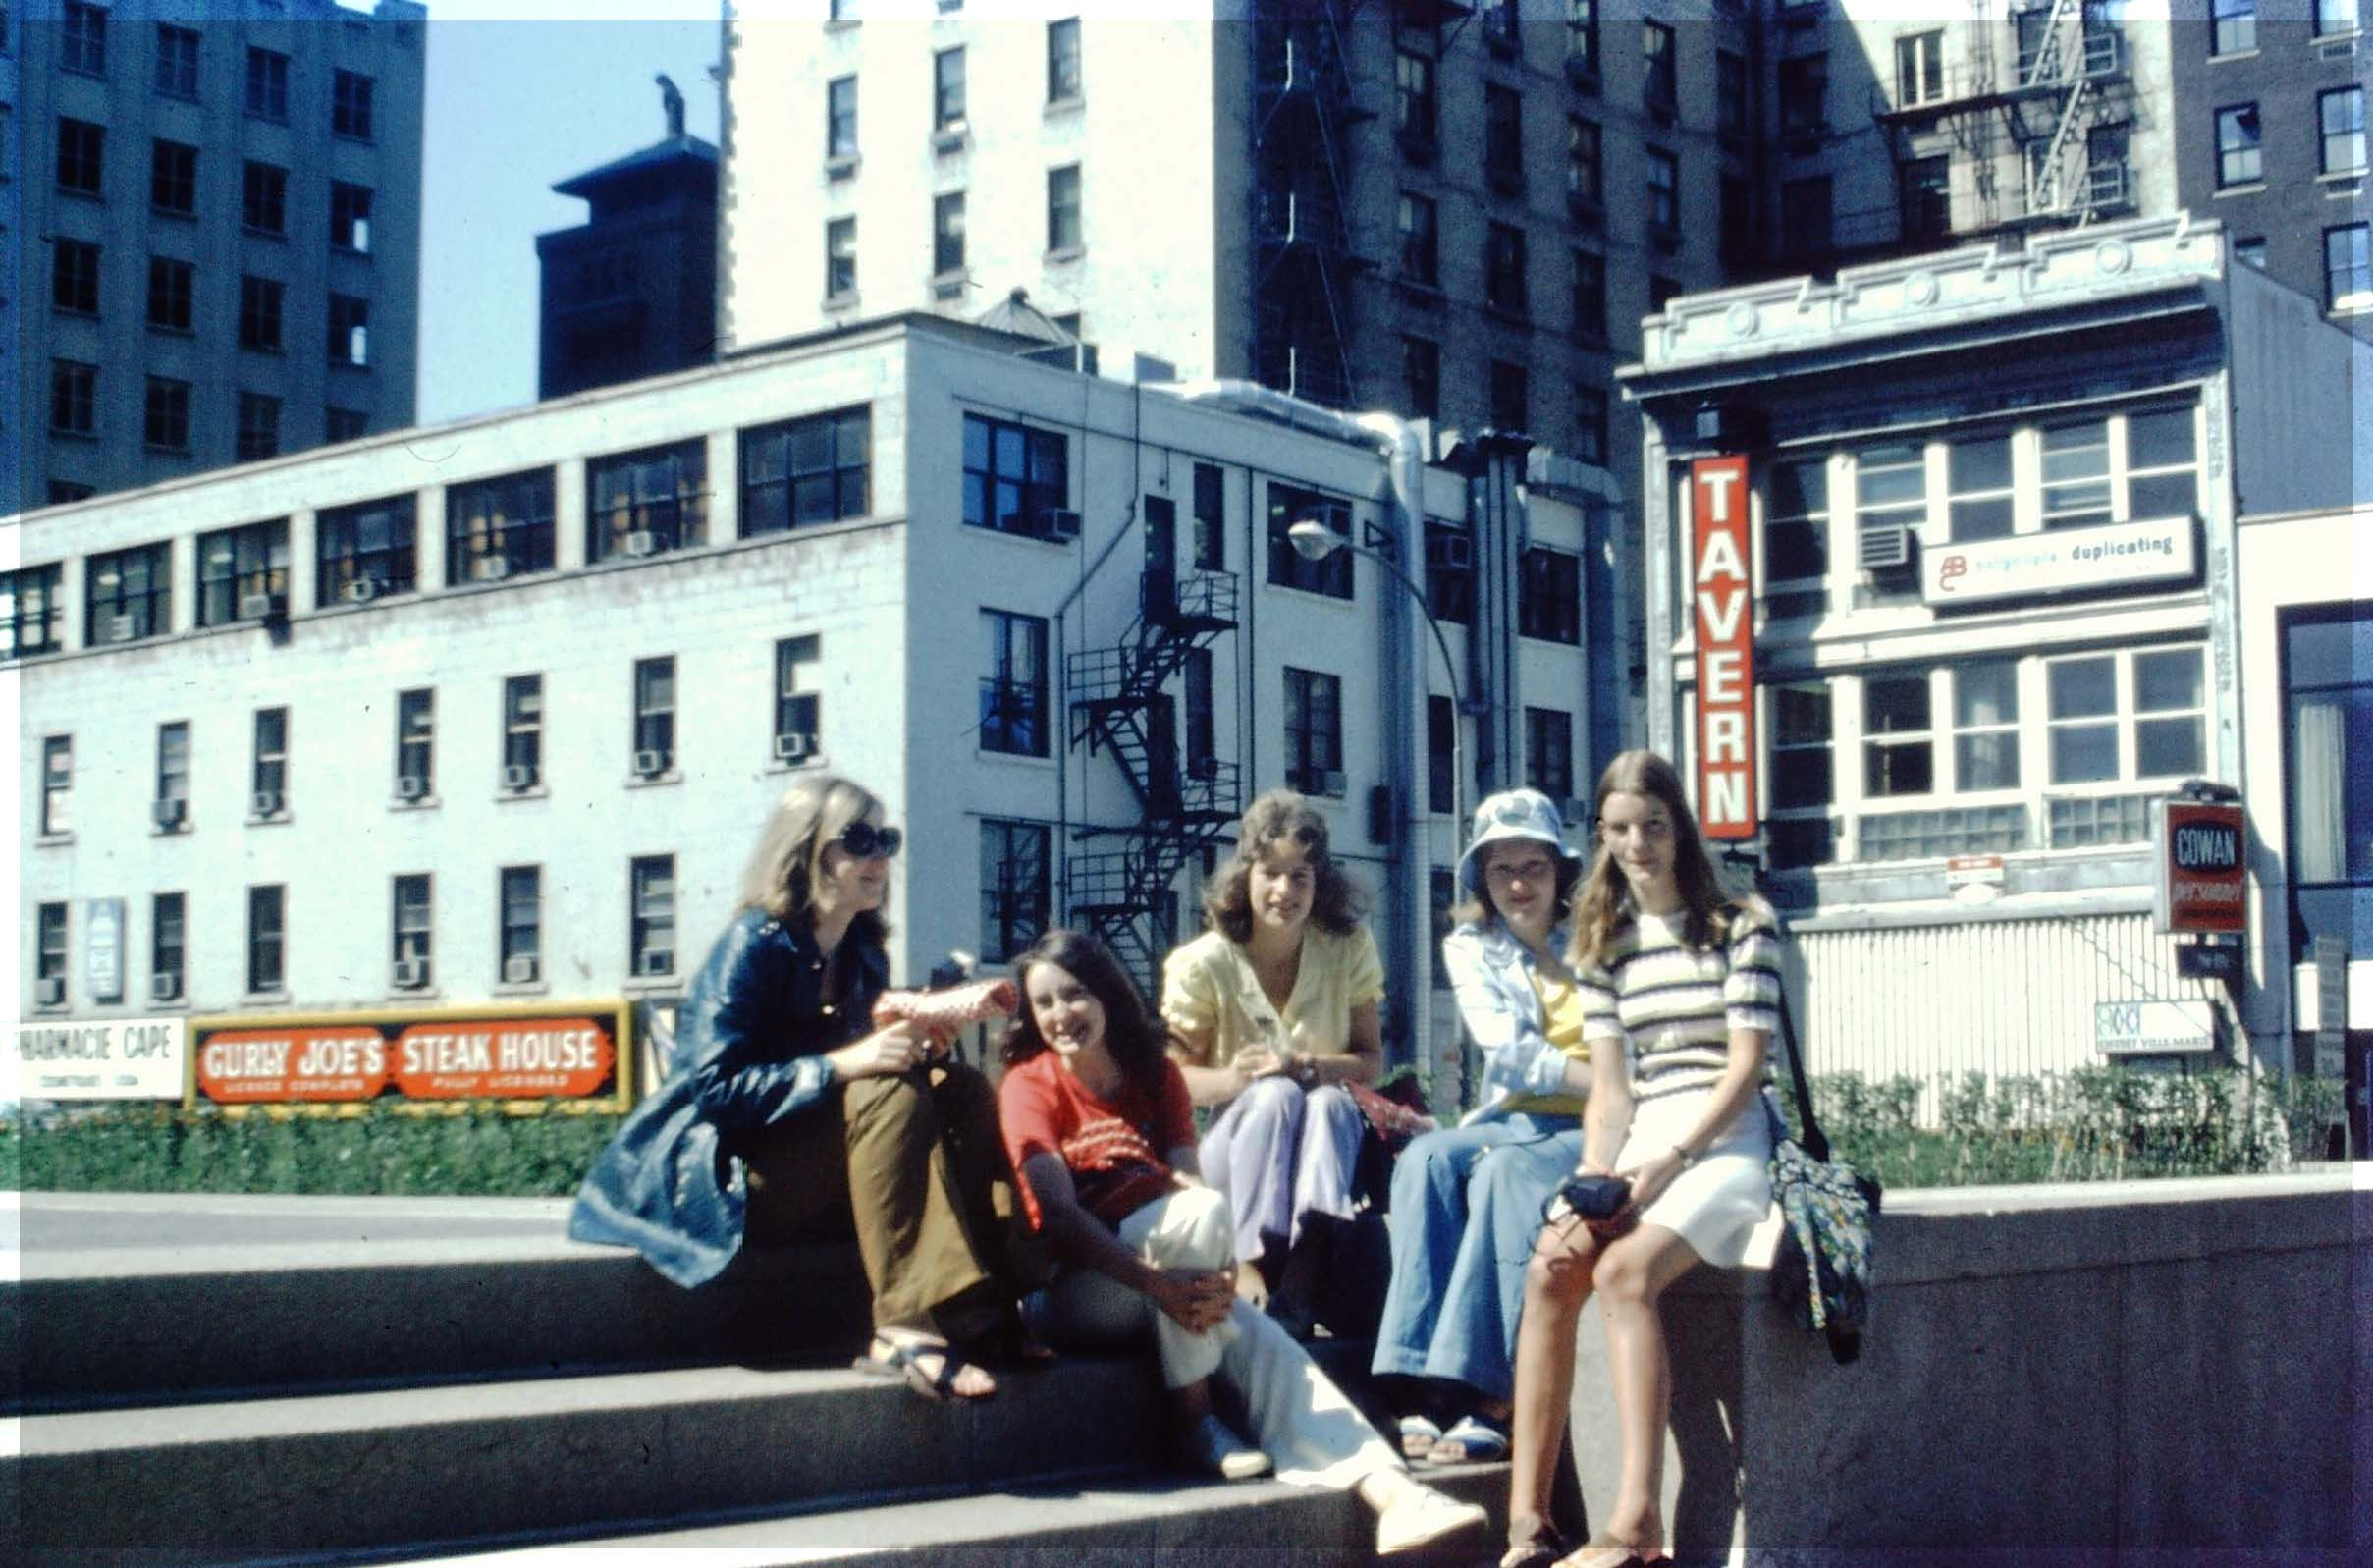 Five teenage girls sitting on steps in a city